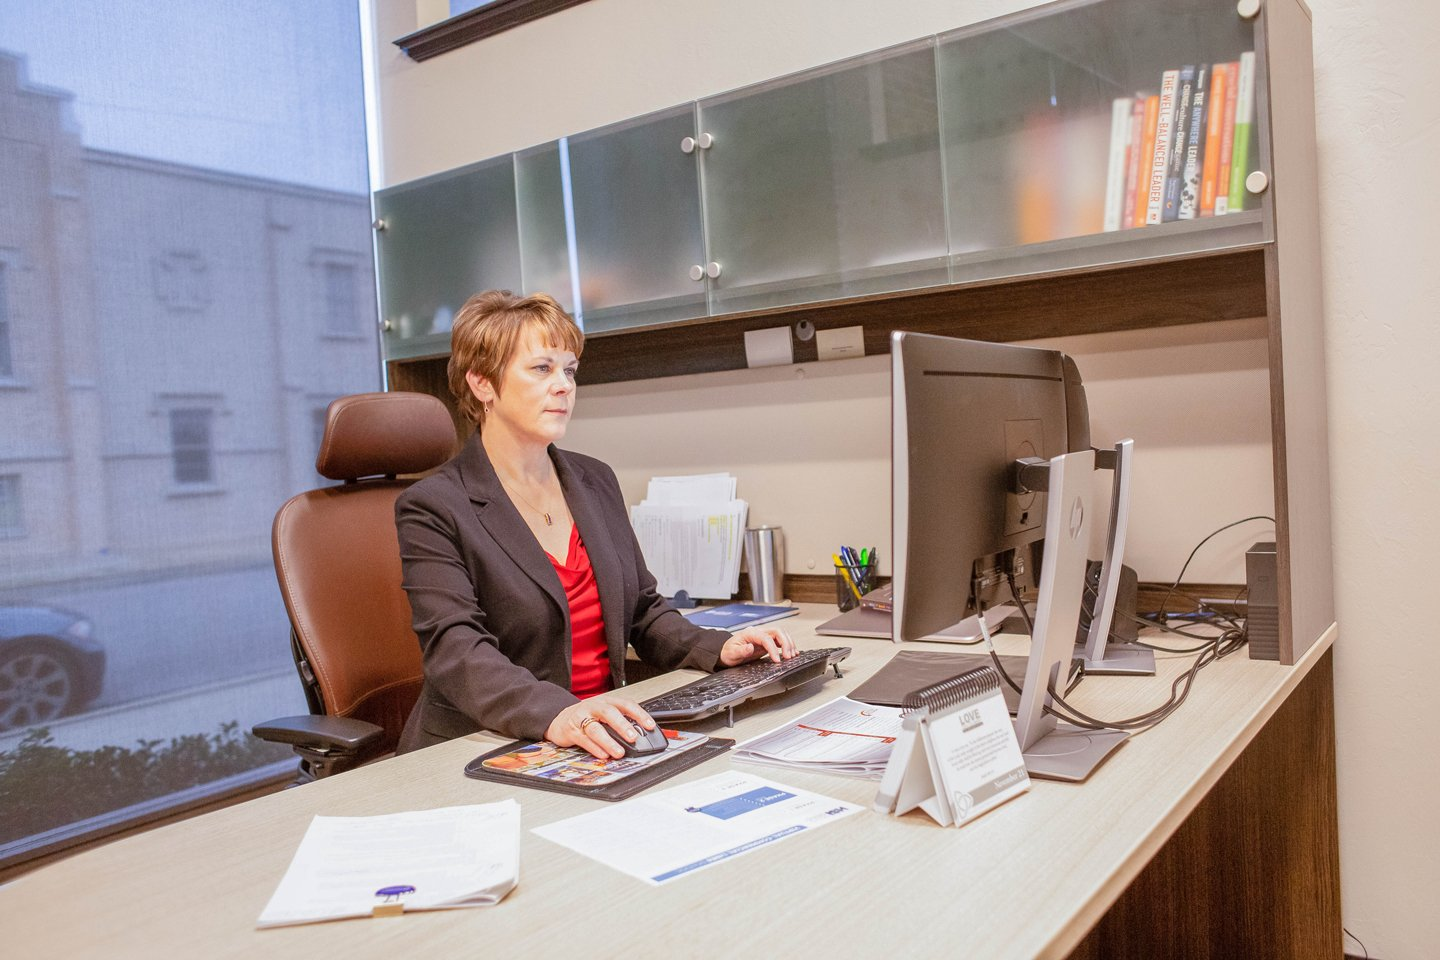 Female business executive working on computer in modern office